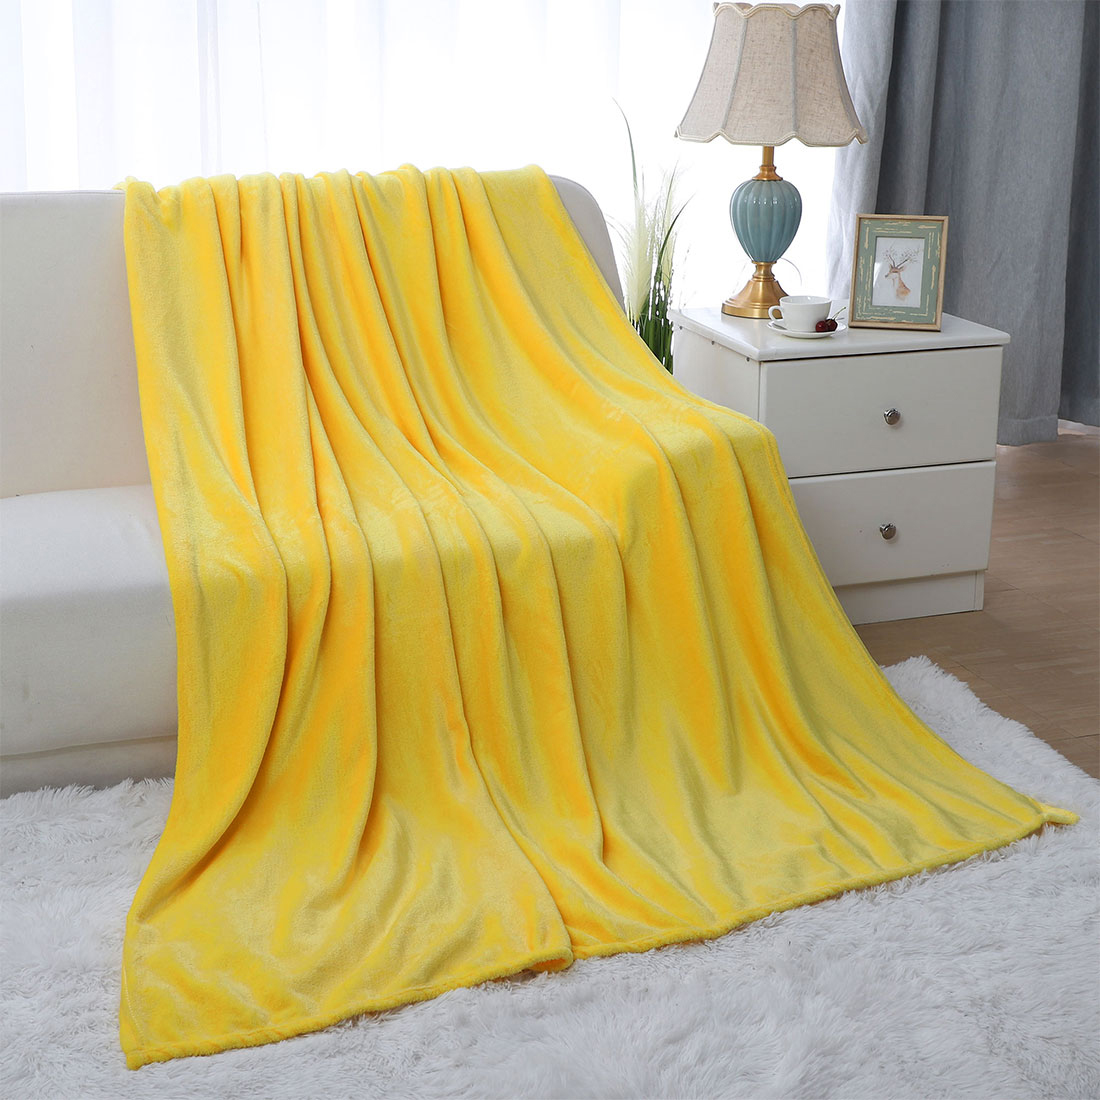 Soft Solid Plush Fleece Throw Blanket for Bedding Twin/Full/Queen(1pcs/2pcs/3pcs/4pcs)